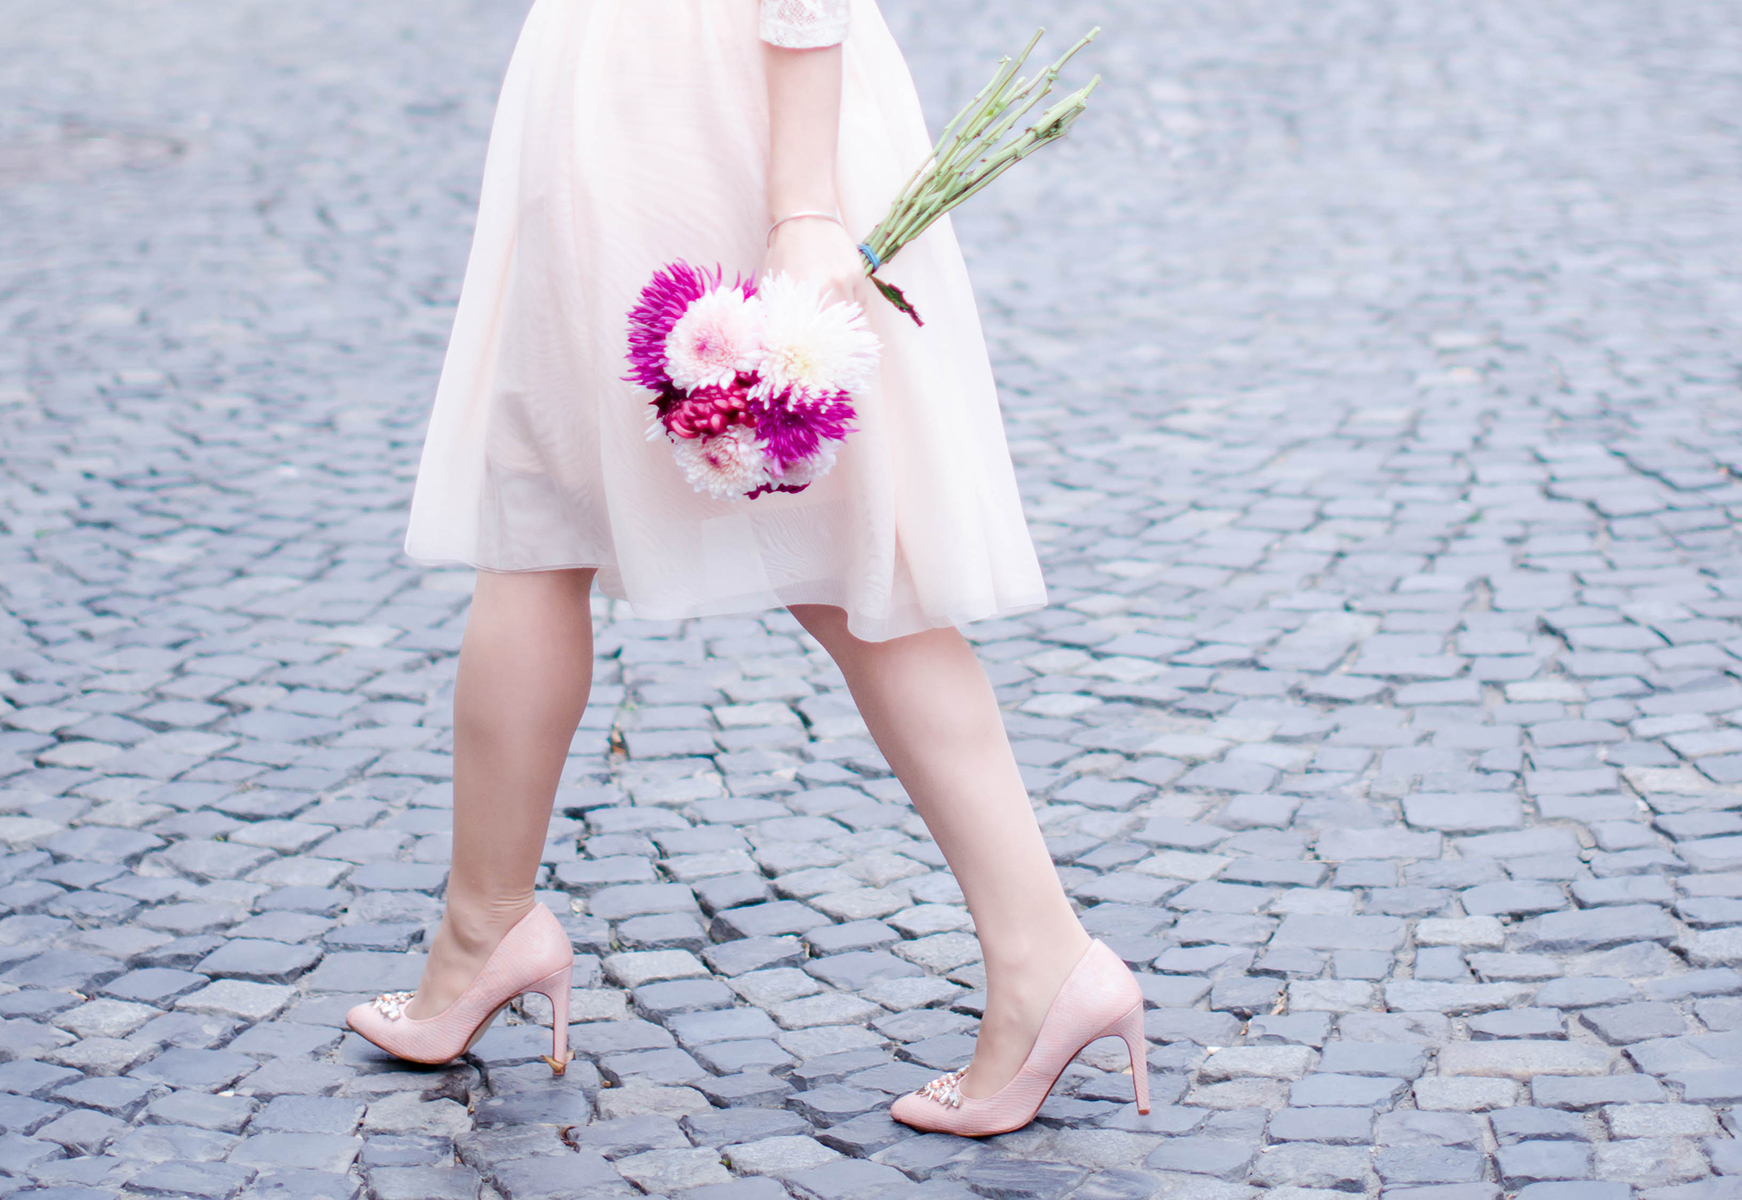 pastel-pink-tulle-skirt-lace-blouse-pink-flowers-feminine-outfit-embellished-pink-heels (13)